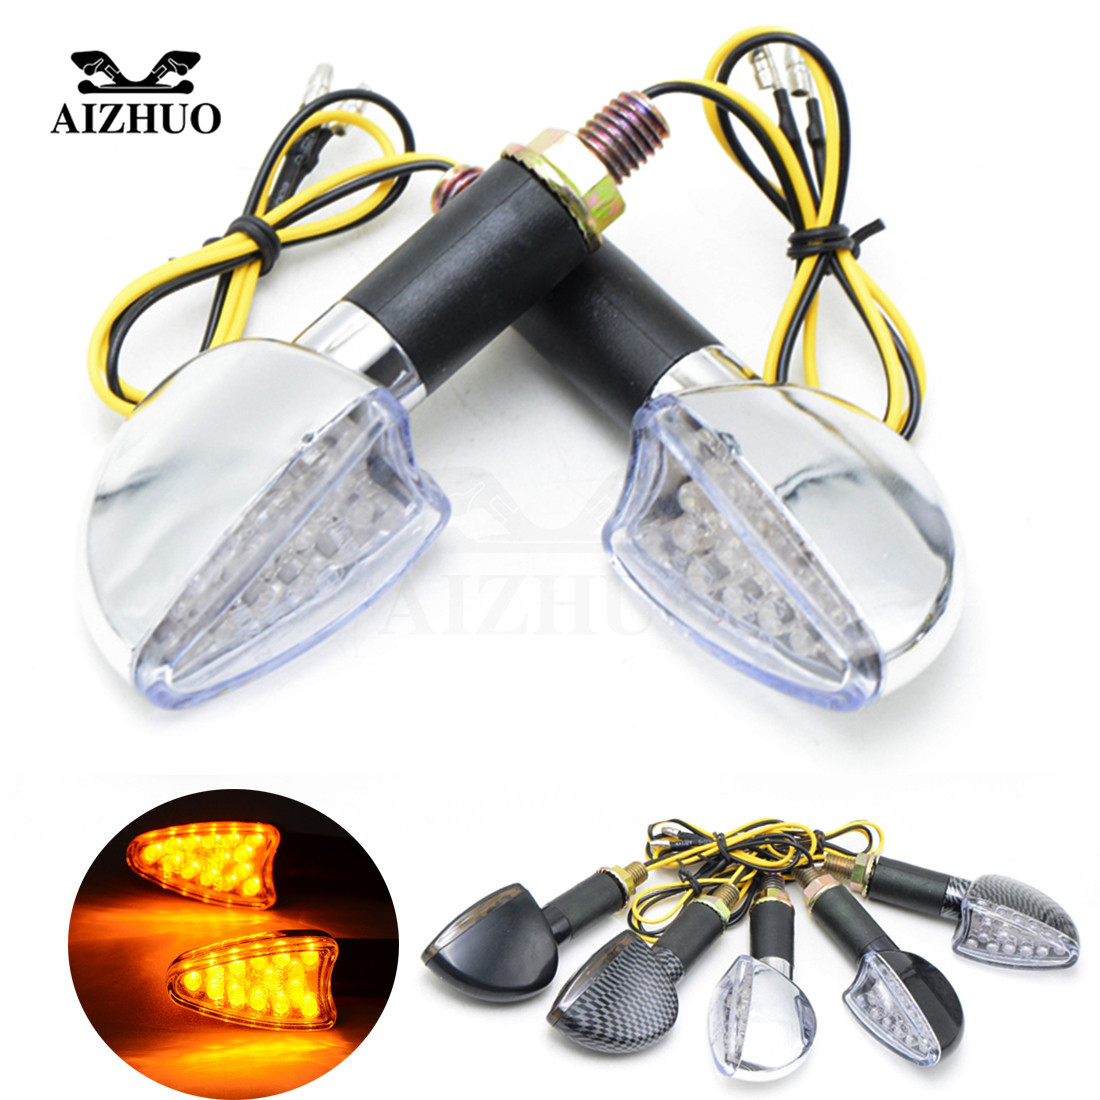 Motorcycle Accessories LED Flashing Tail Signal Turn Signal For Yamaha MT10 TDM 900 XT660 XT660X <font><b>XVS</b></font> <font><b>1100</b></font> MT 09 TRACER R1 R6 image